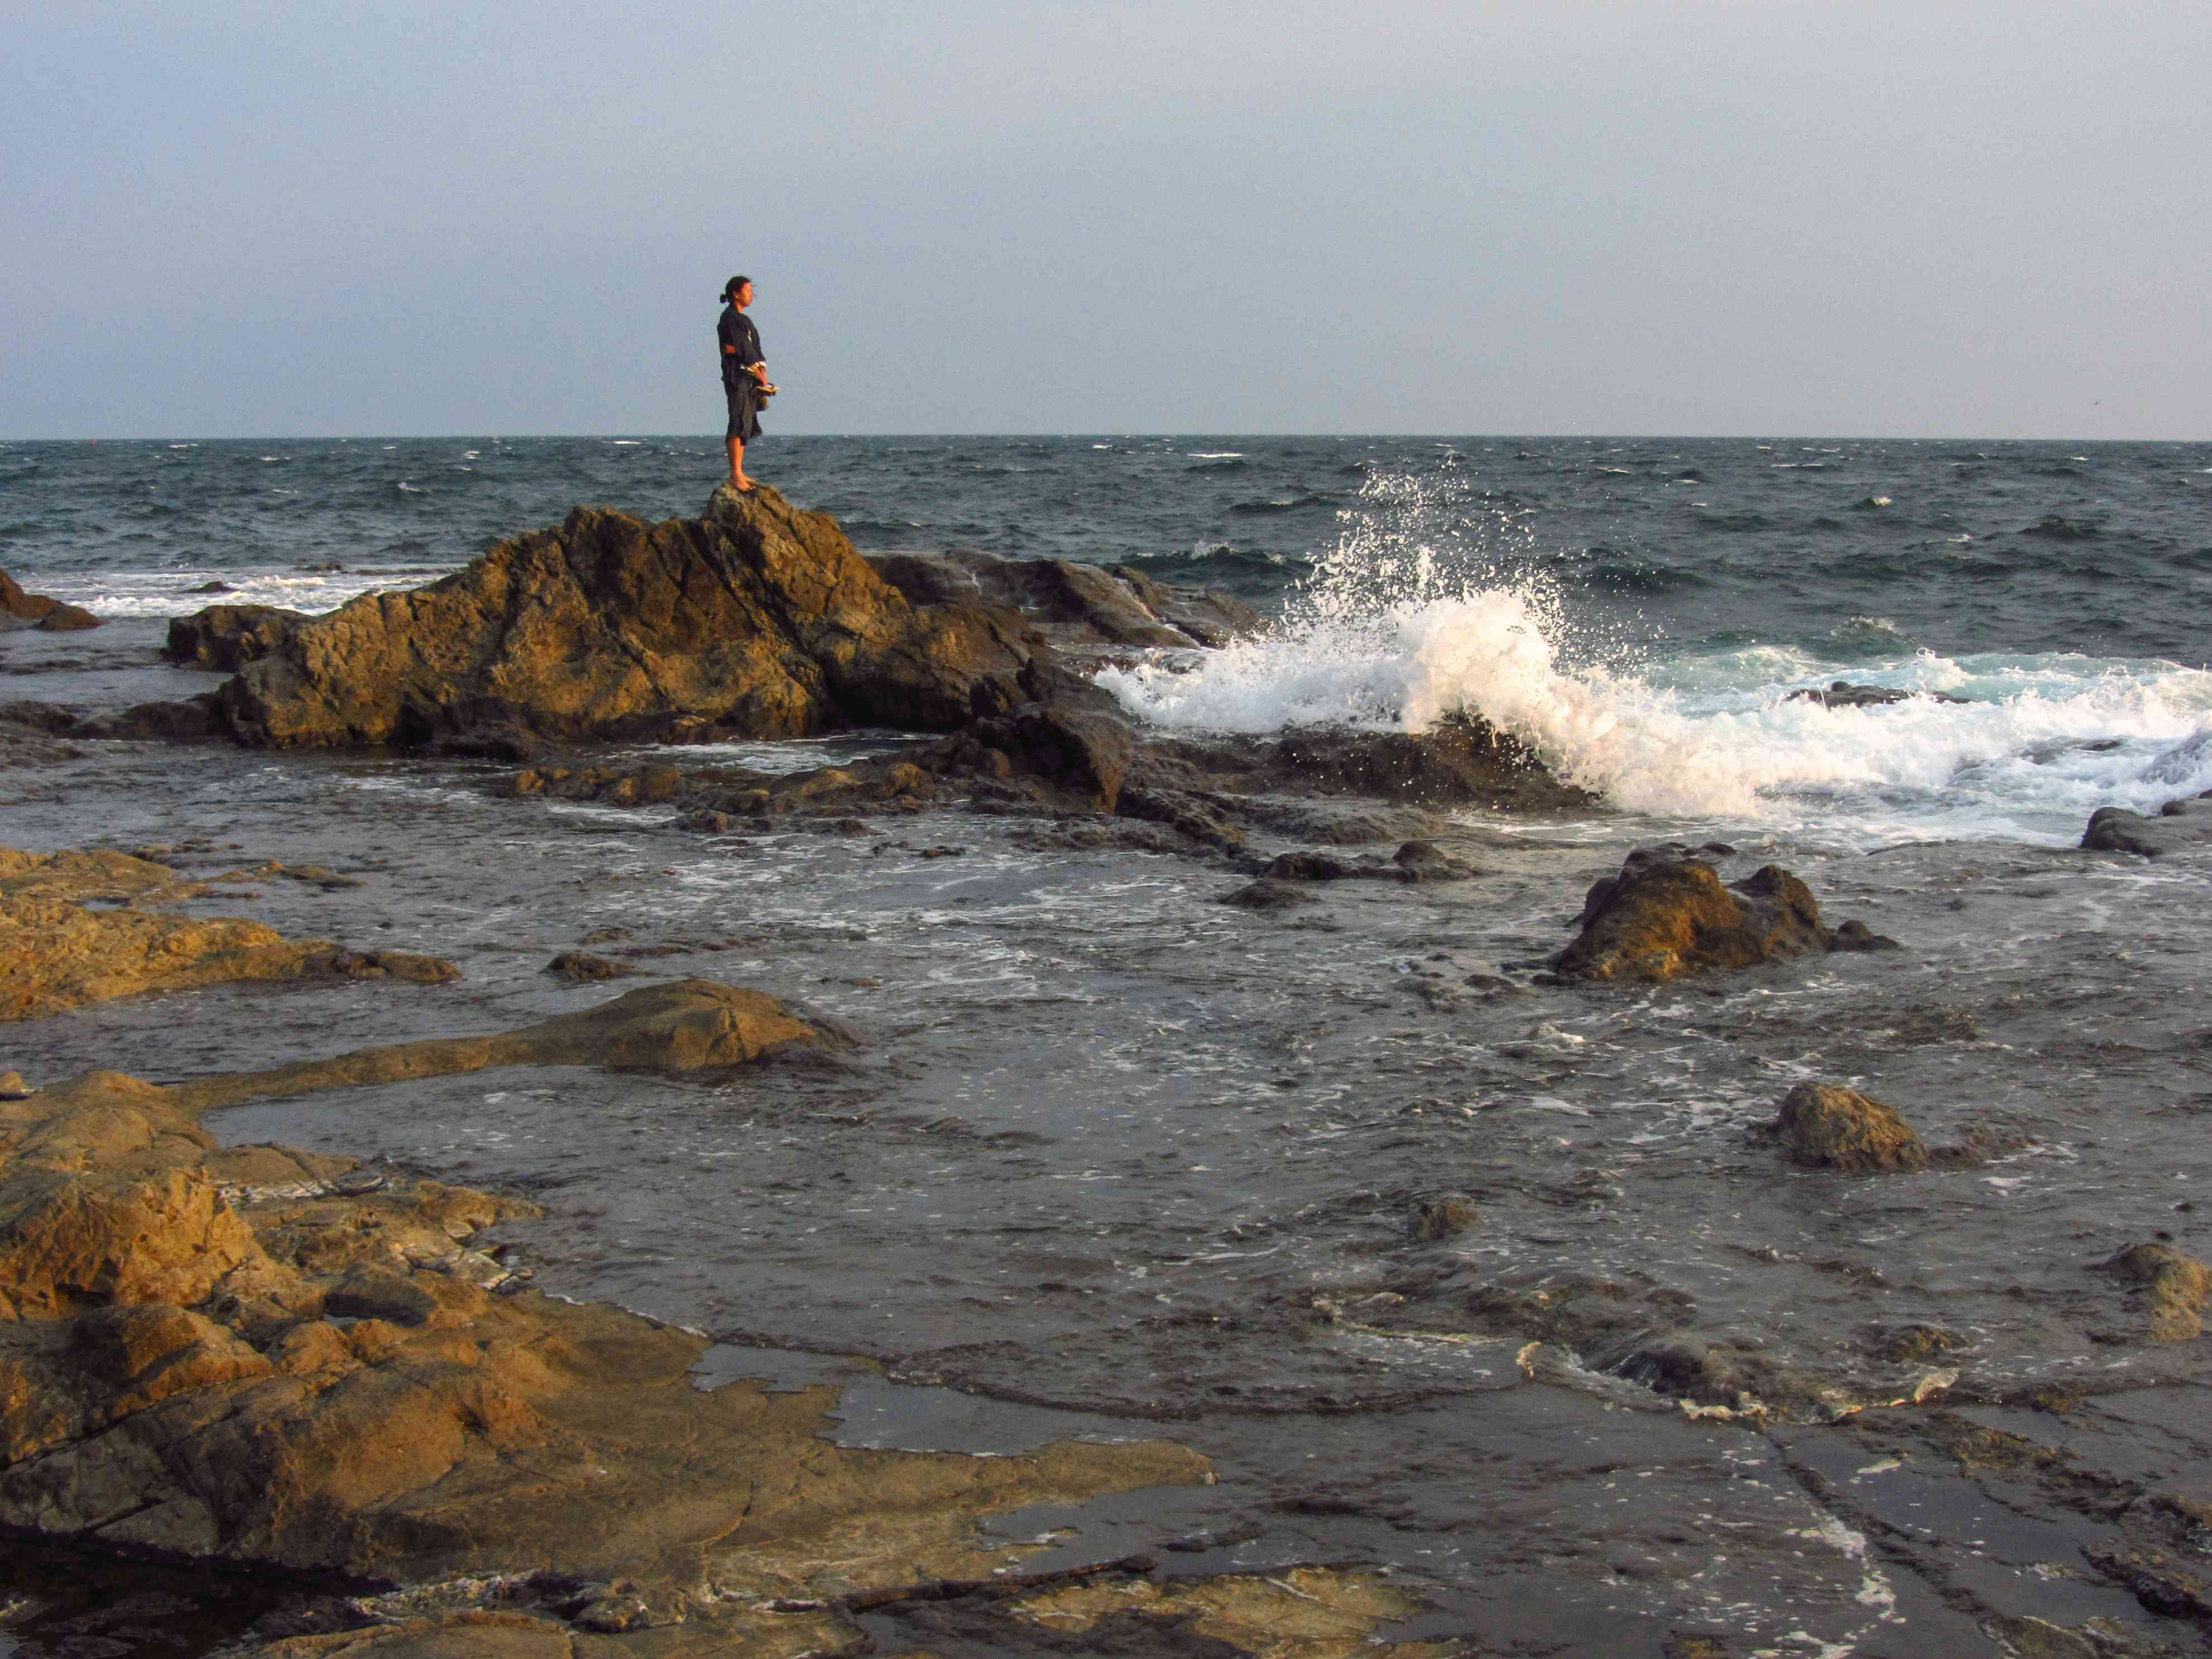 person stands alone on craggy rock while waves crash around them